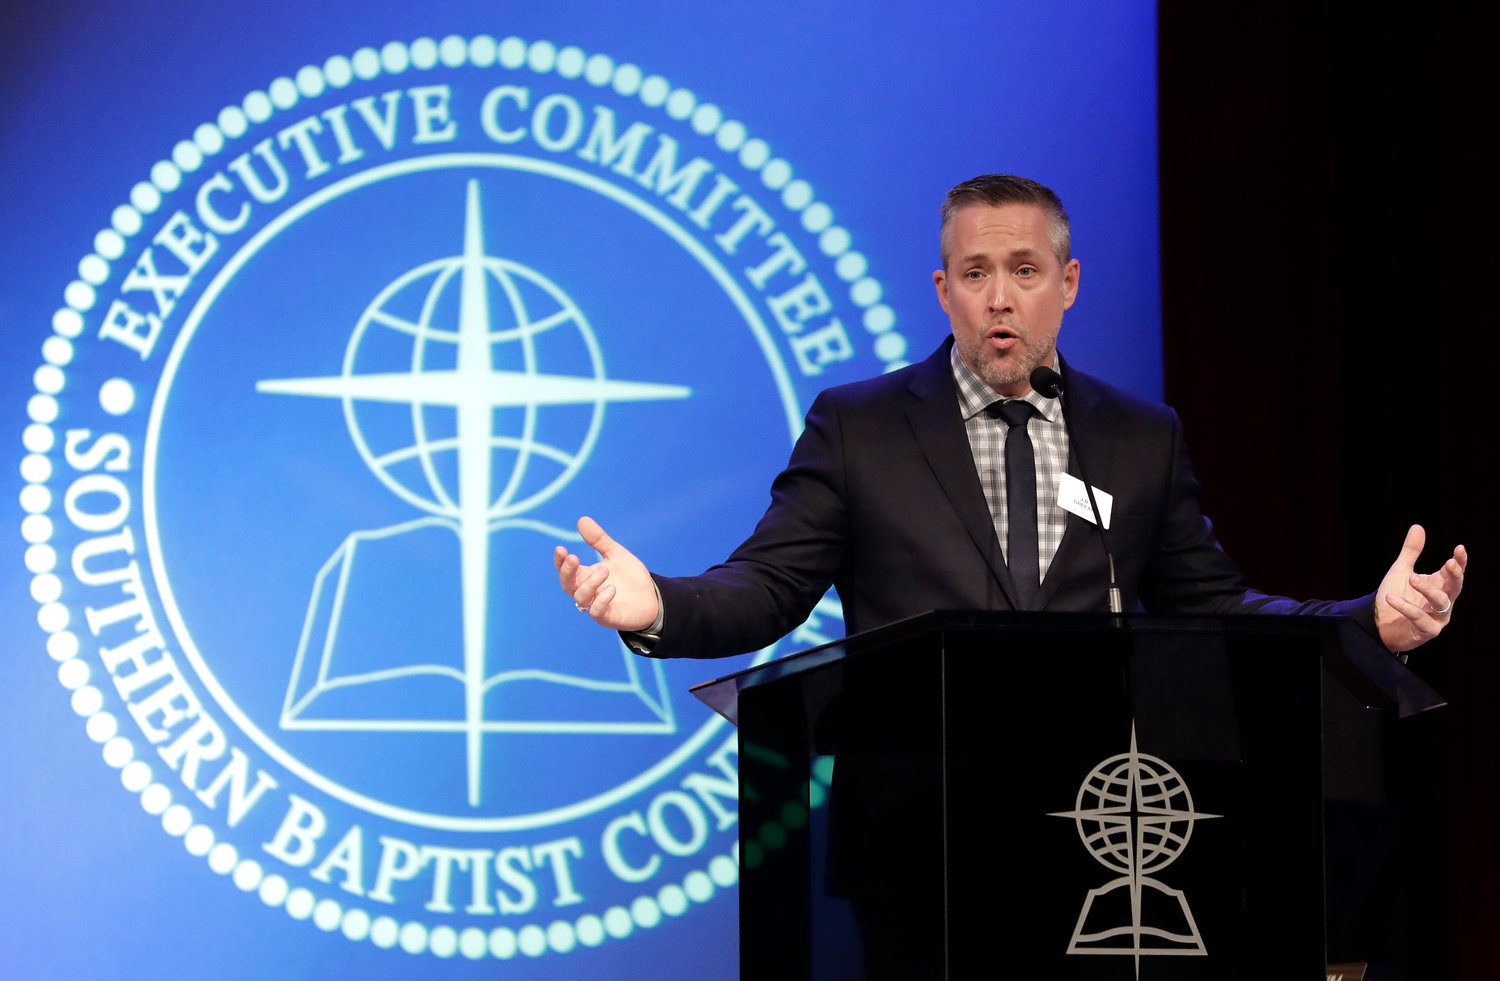 Southern Baptist Convention Expels Two Churches Over LGBT Inclusion and Two More for Hiring Pastors Convicted of Sex Offenses